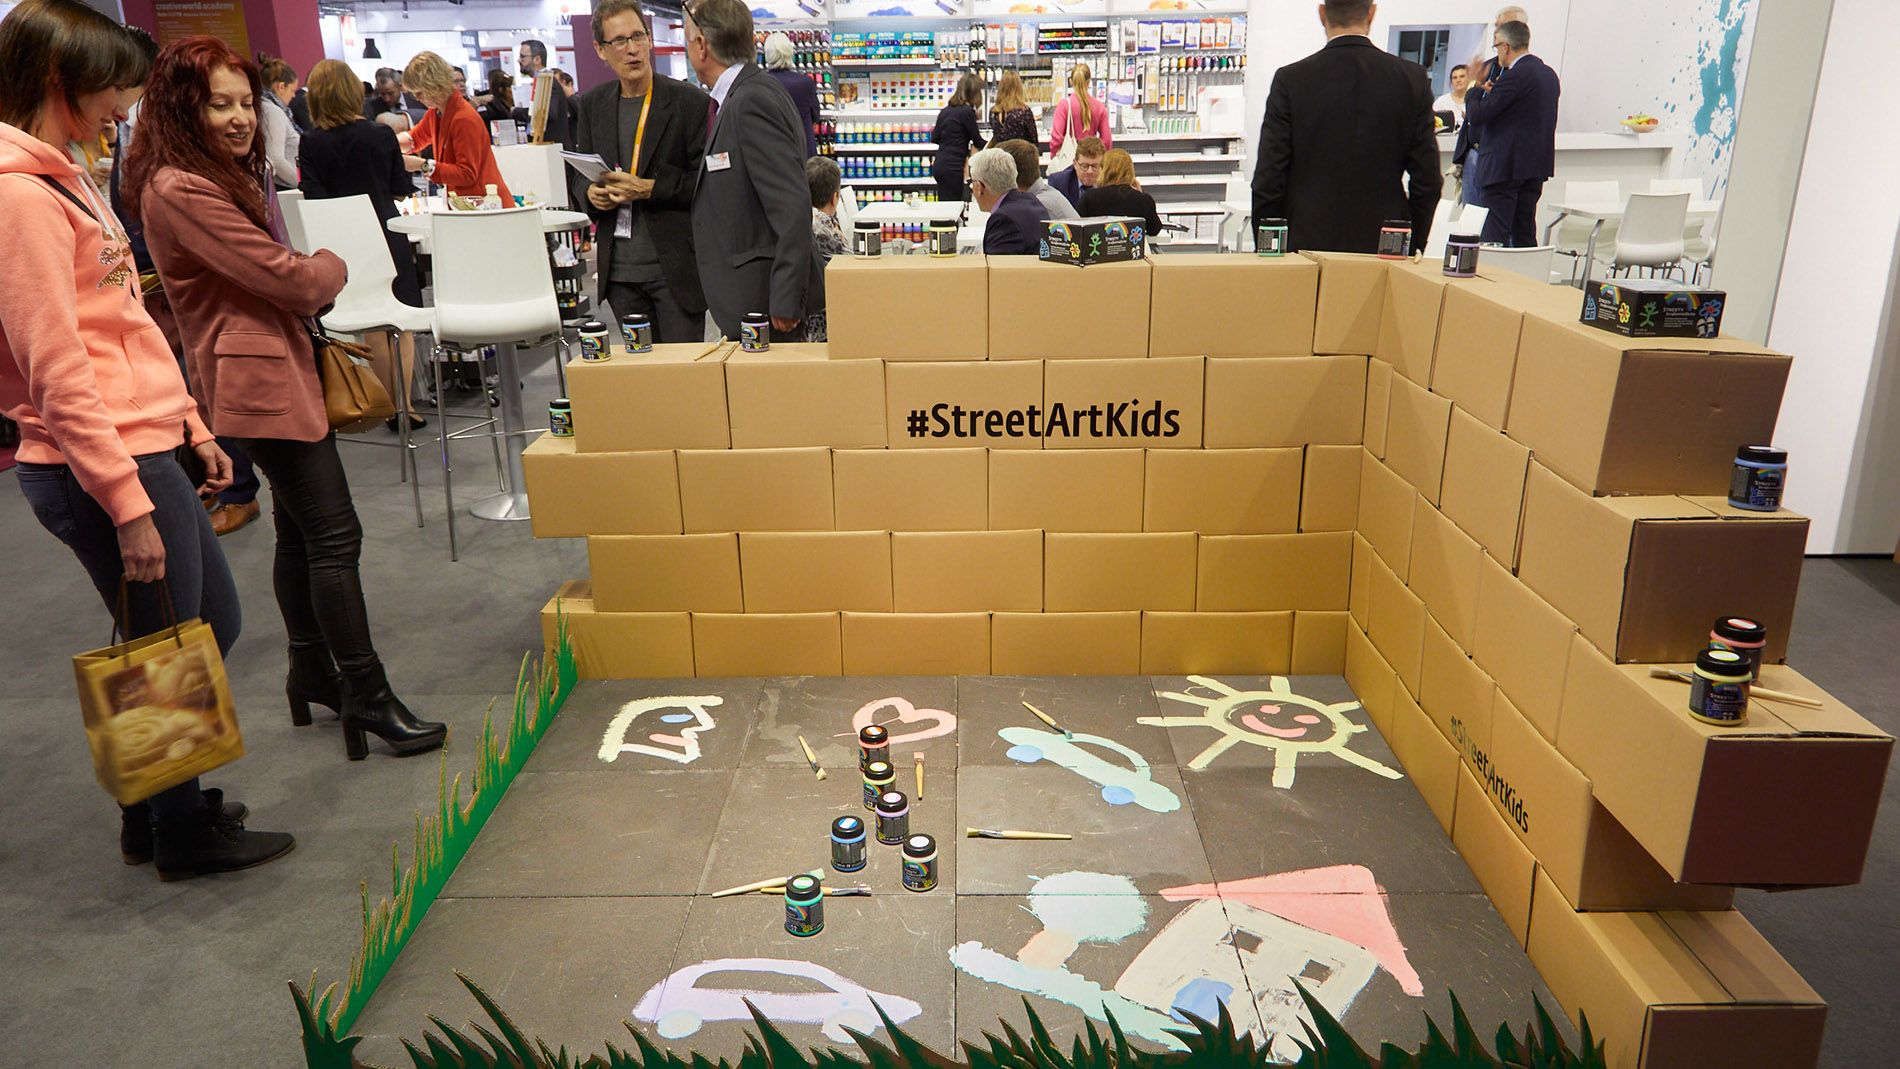 Street art products for children at Creativeworld